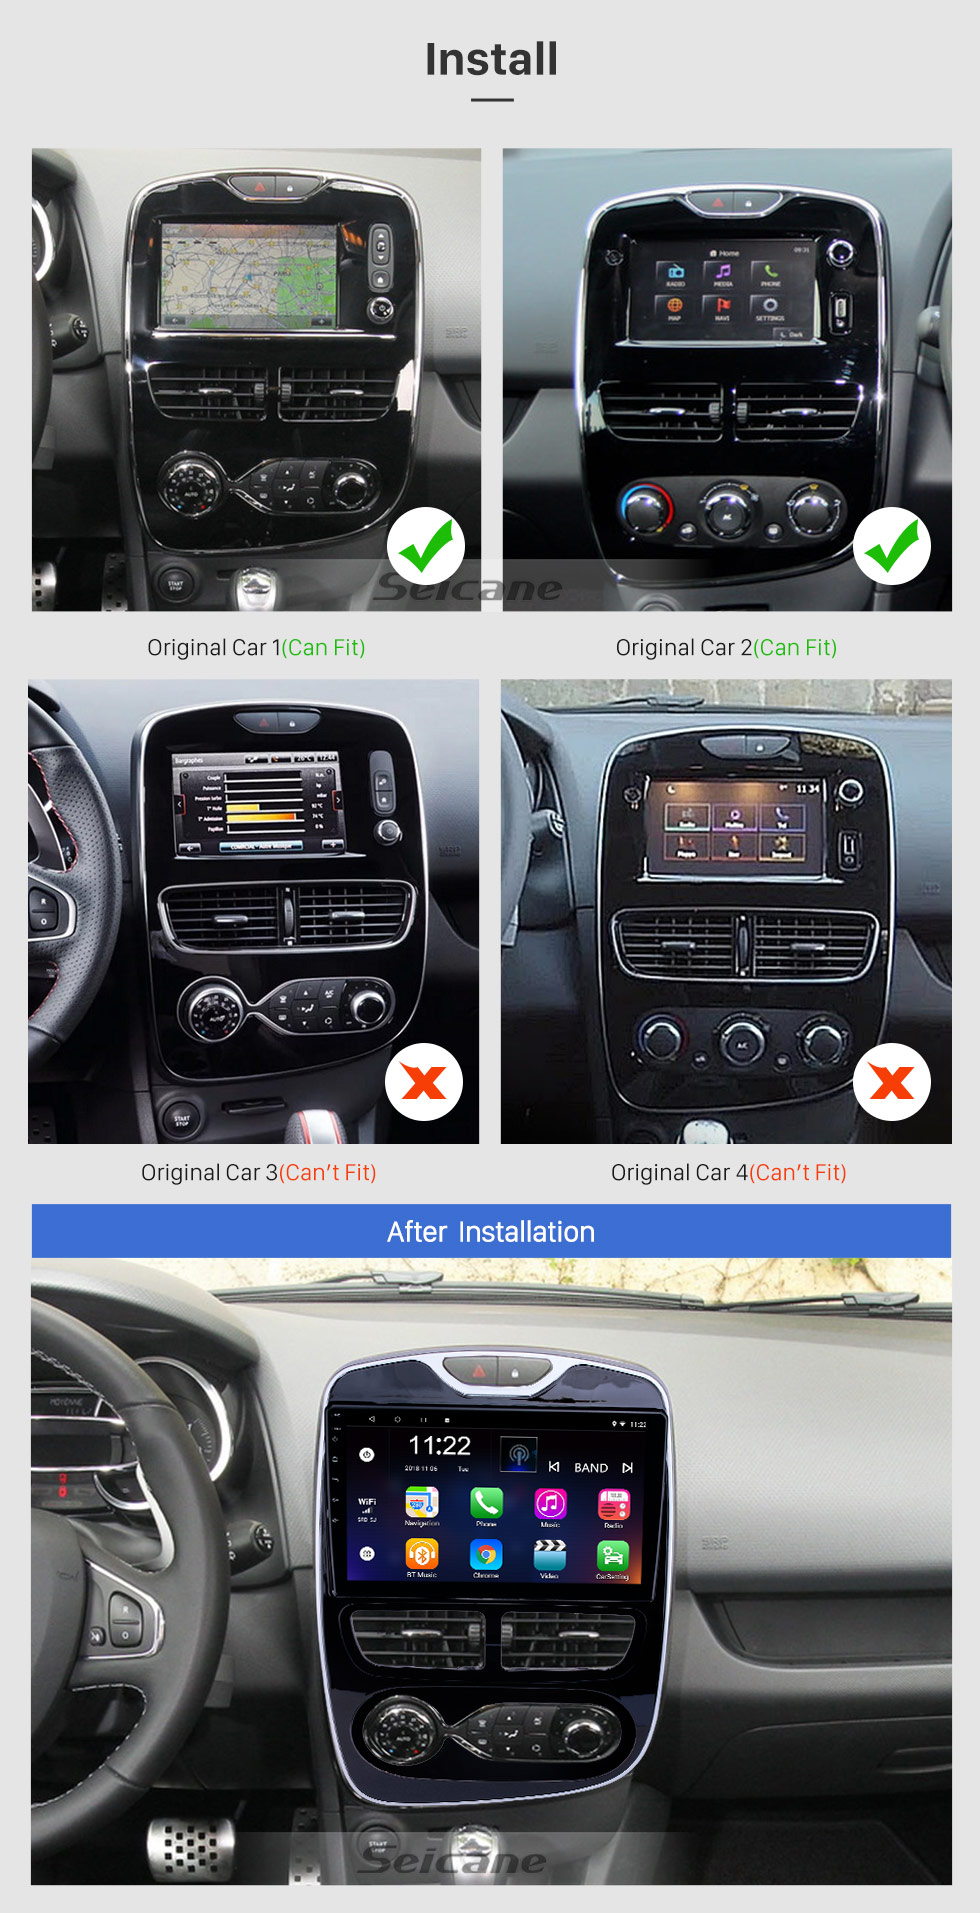 Seicane 10.1 inch Android 8.1 GPS Navigation Radio for 2012-2016 Renault Clio Digital/Analog With HD Touchscreen Bluetooth support Carplay OBD2